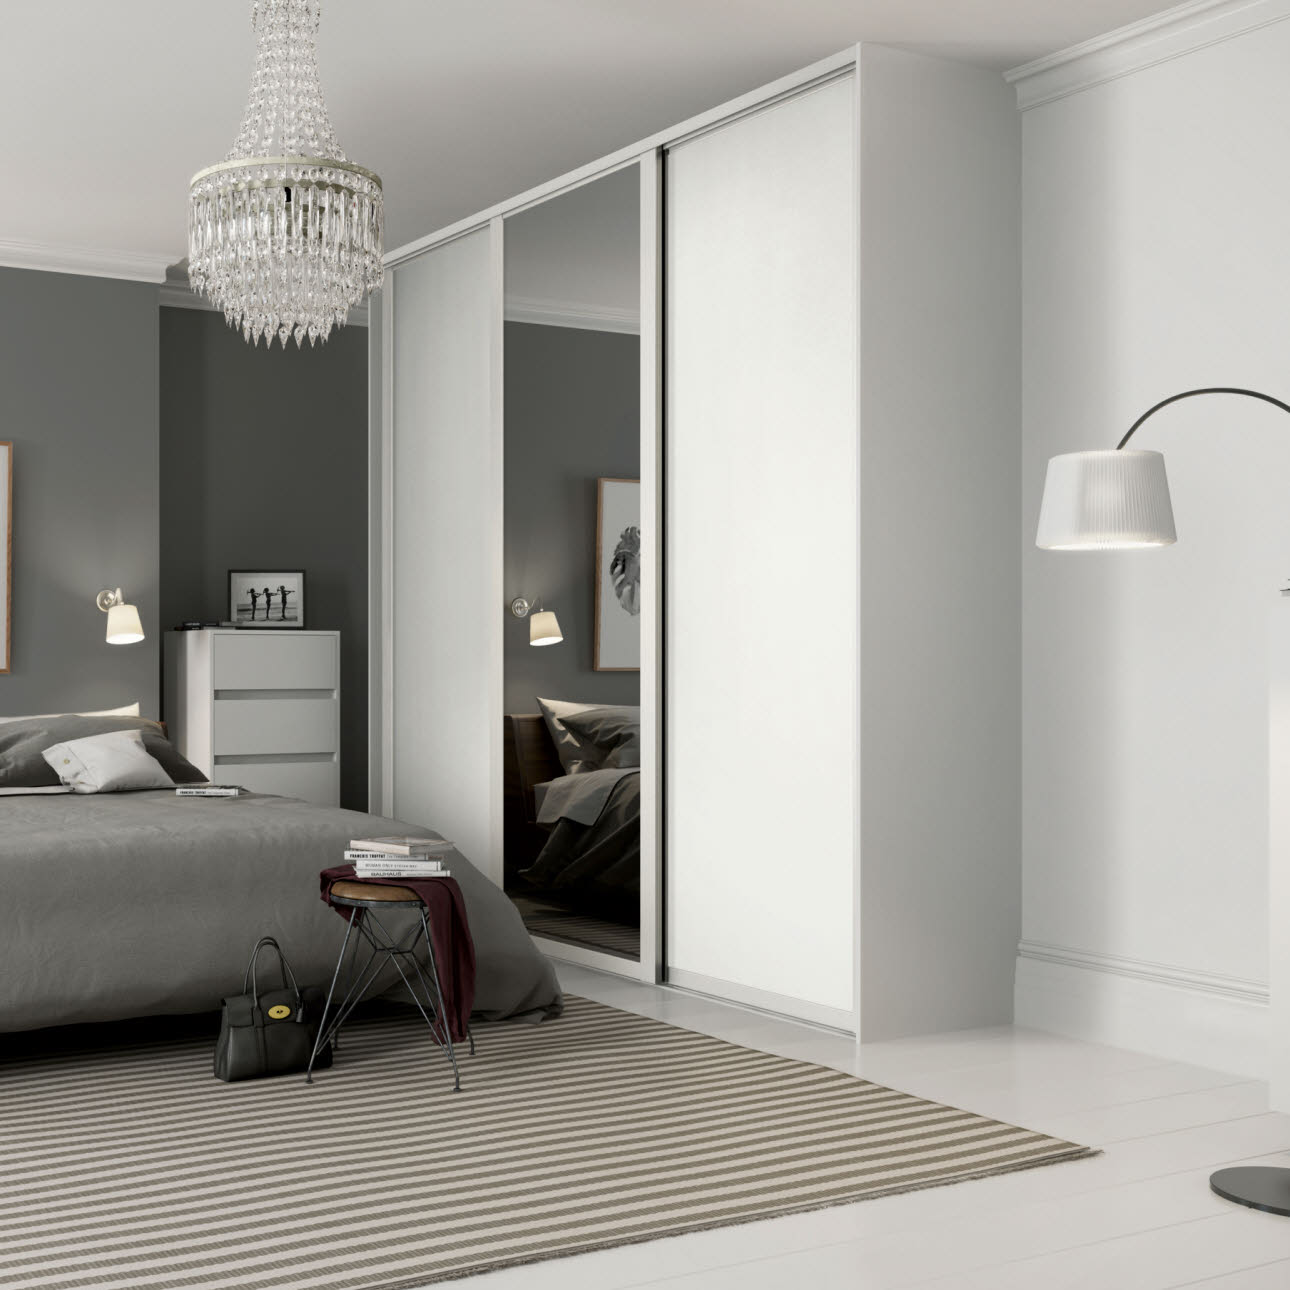 Grey and white bedroom, white fitted wardrobe with central full length mirror